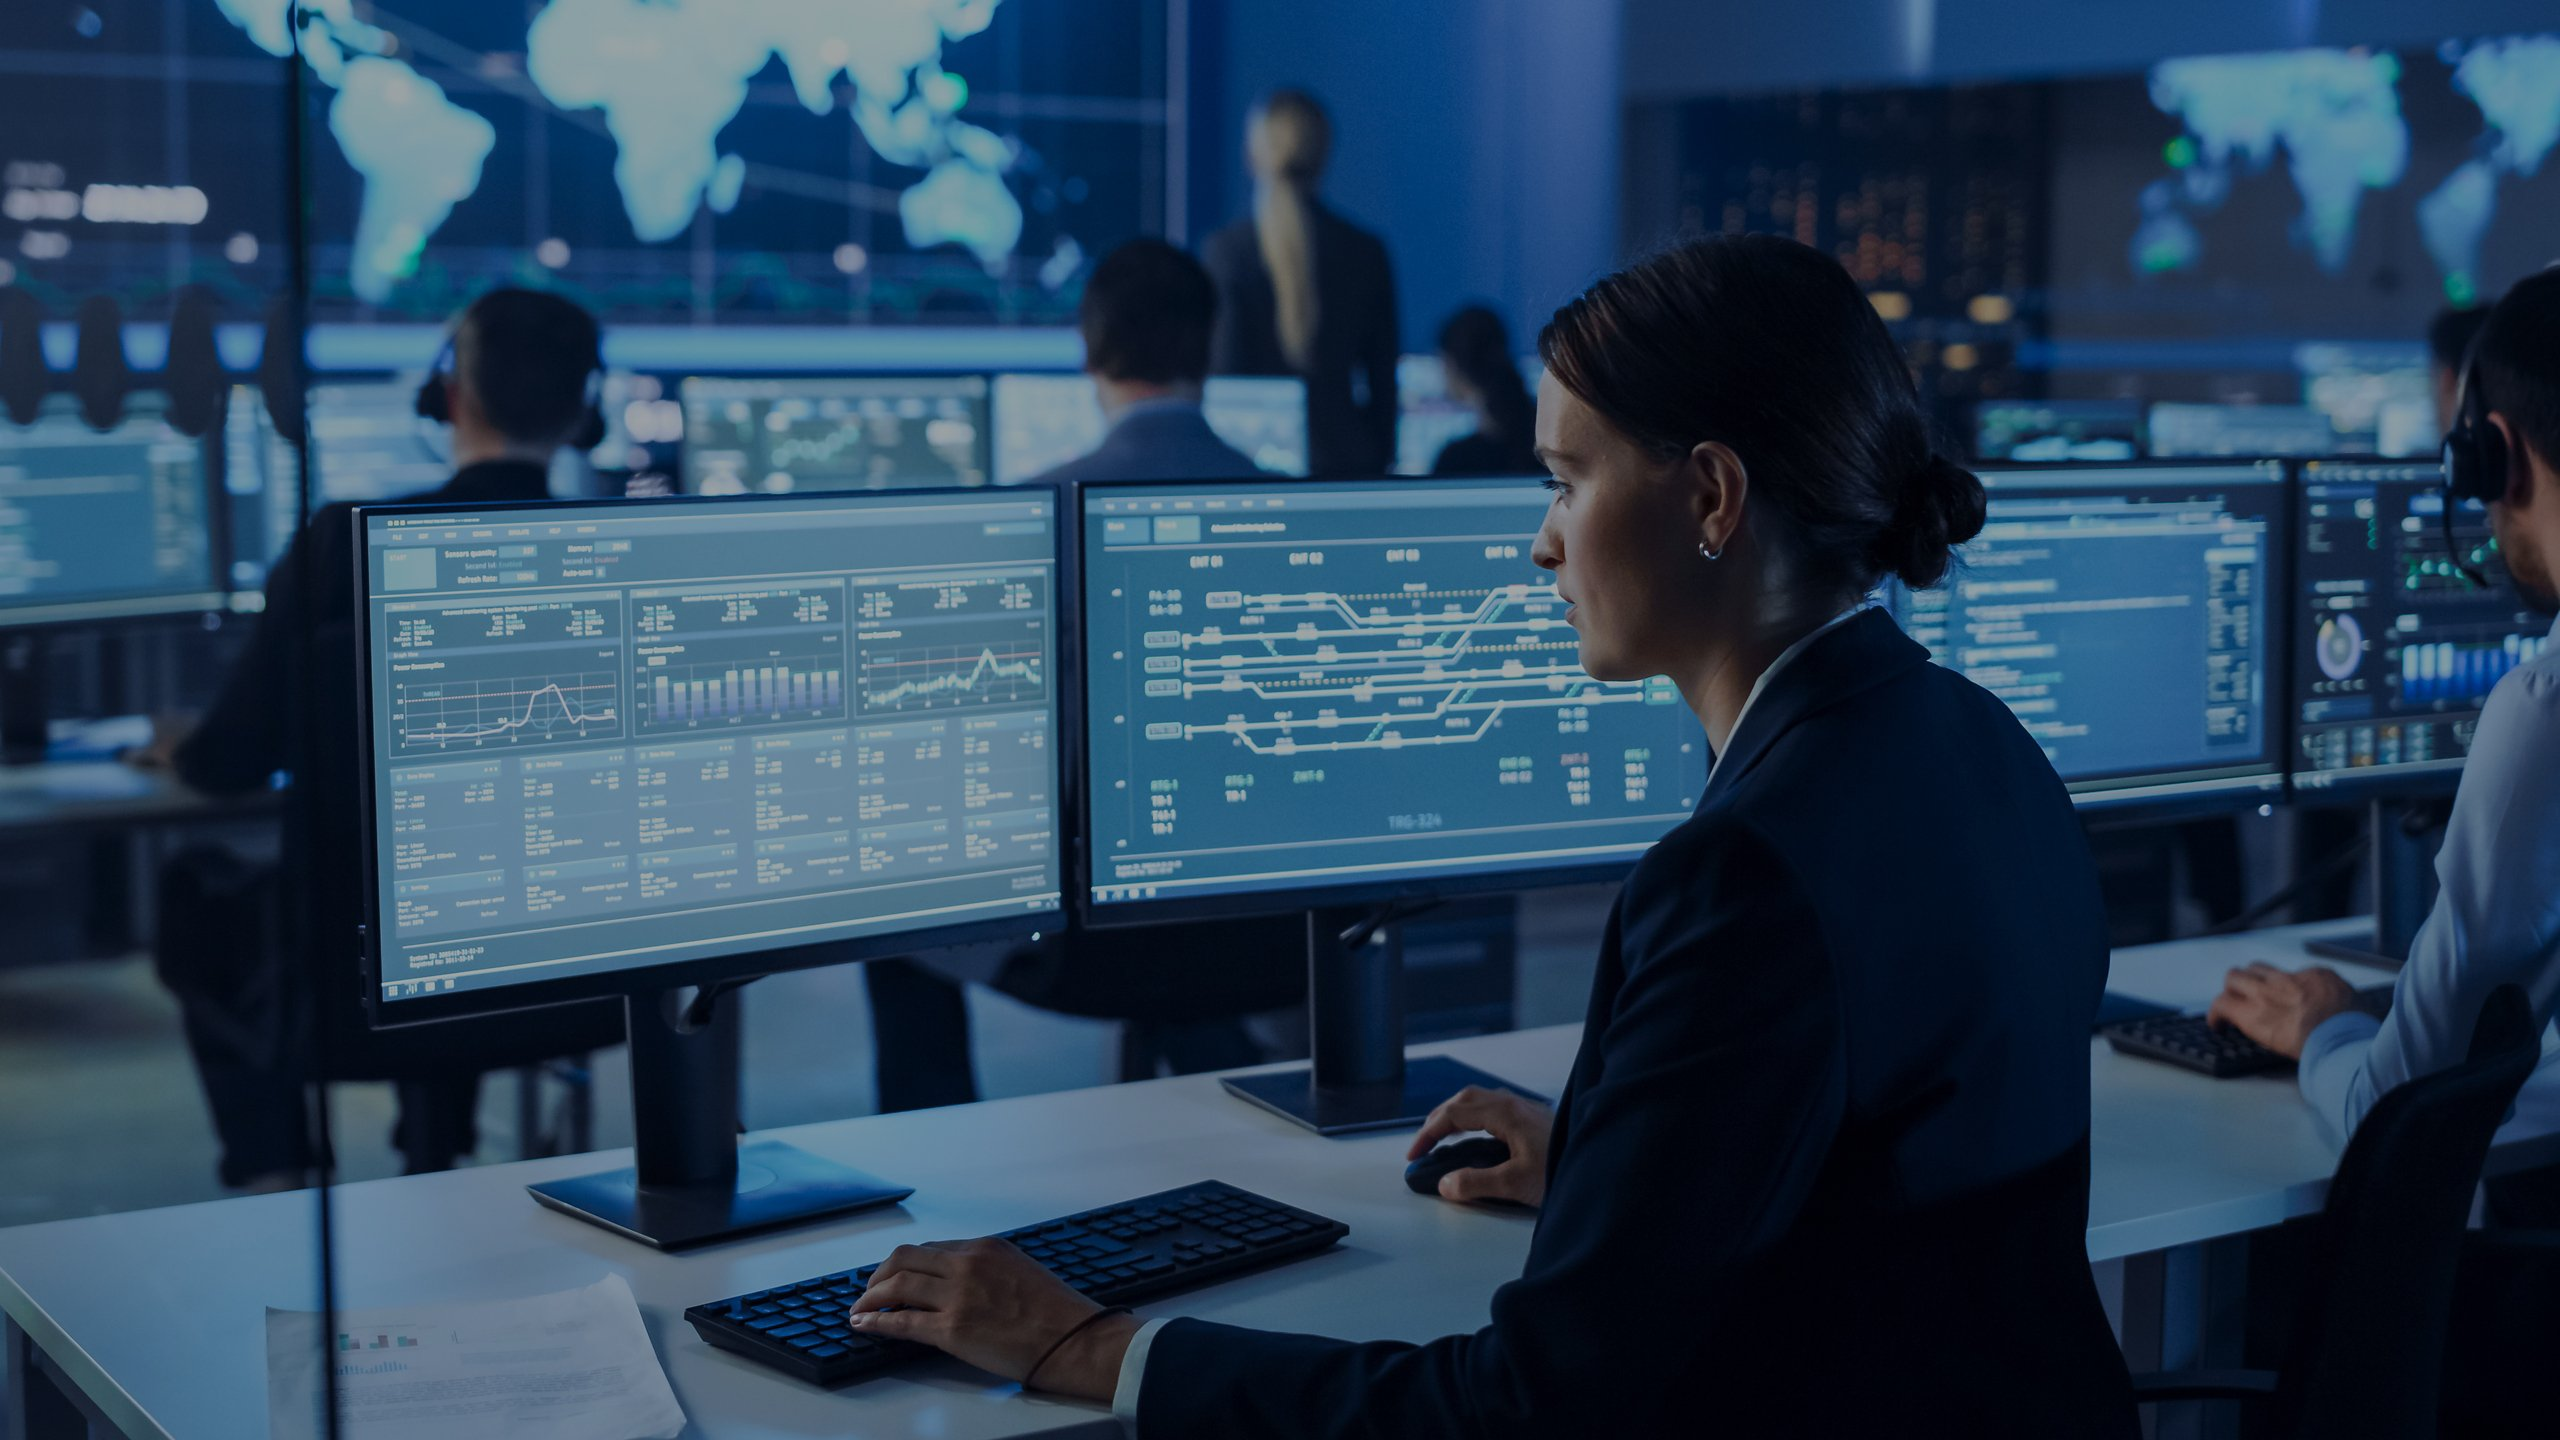 Data scientist working at computer in control room